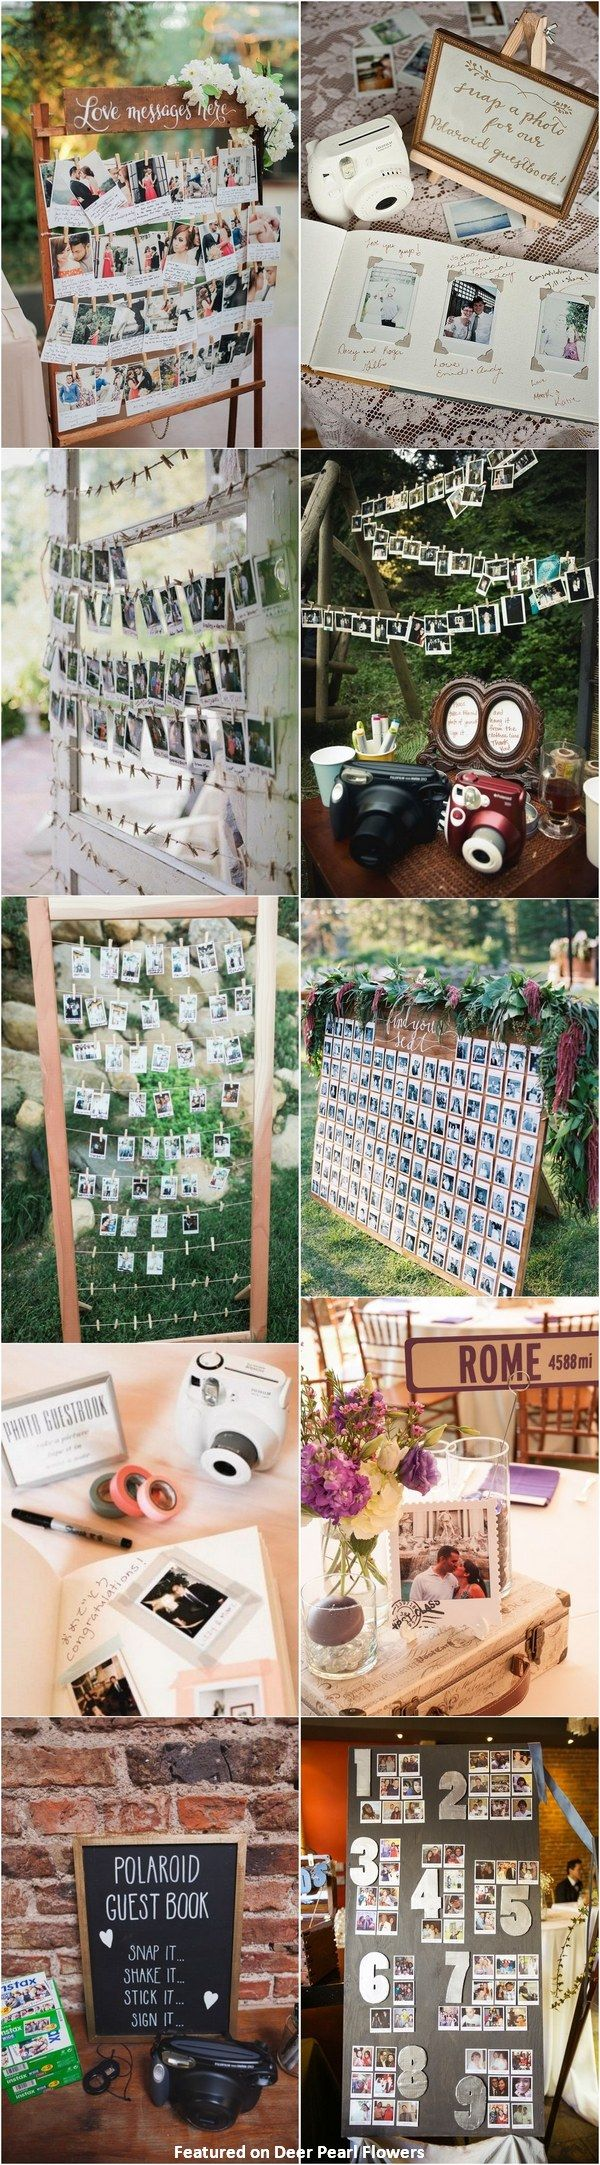 unique wedding ideas - Polaroid wedding reception decor ideas /  http://www.deerpearlflowers.com/creative-polaroid-wedding-ideas/